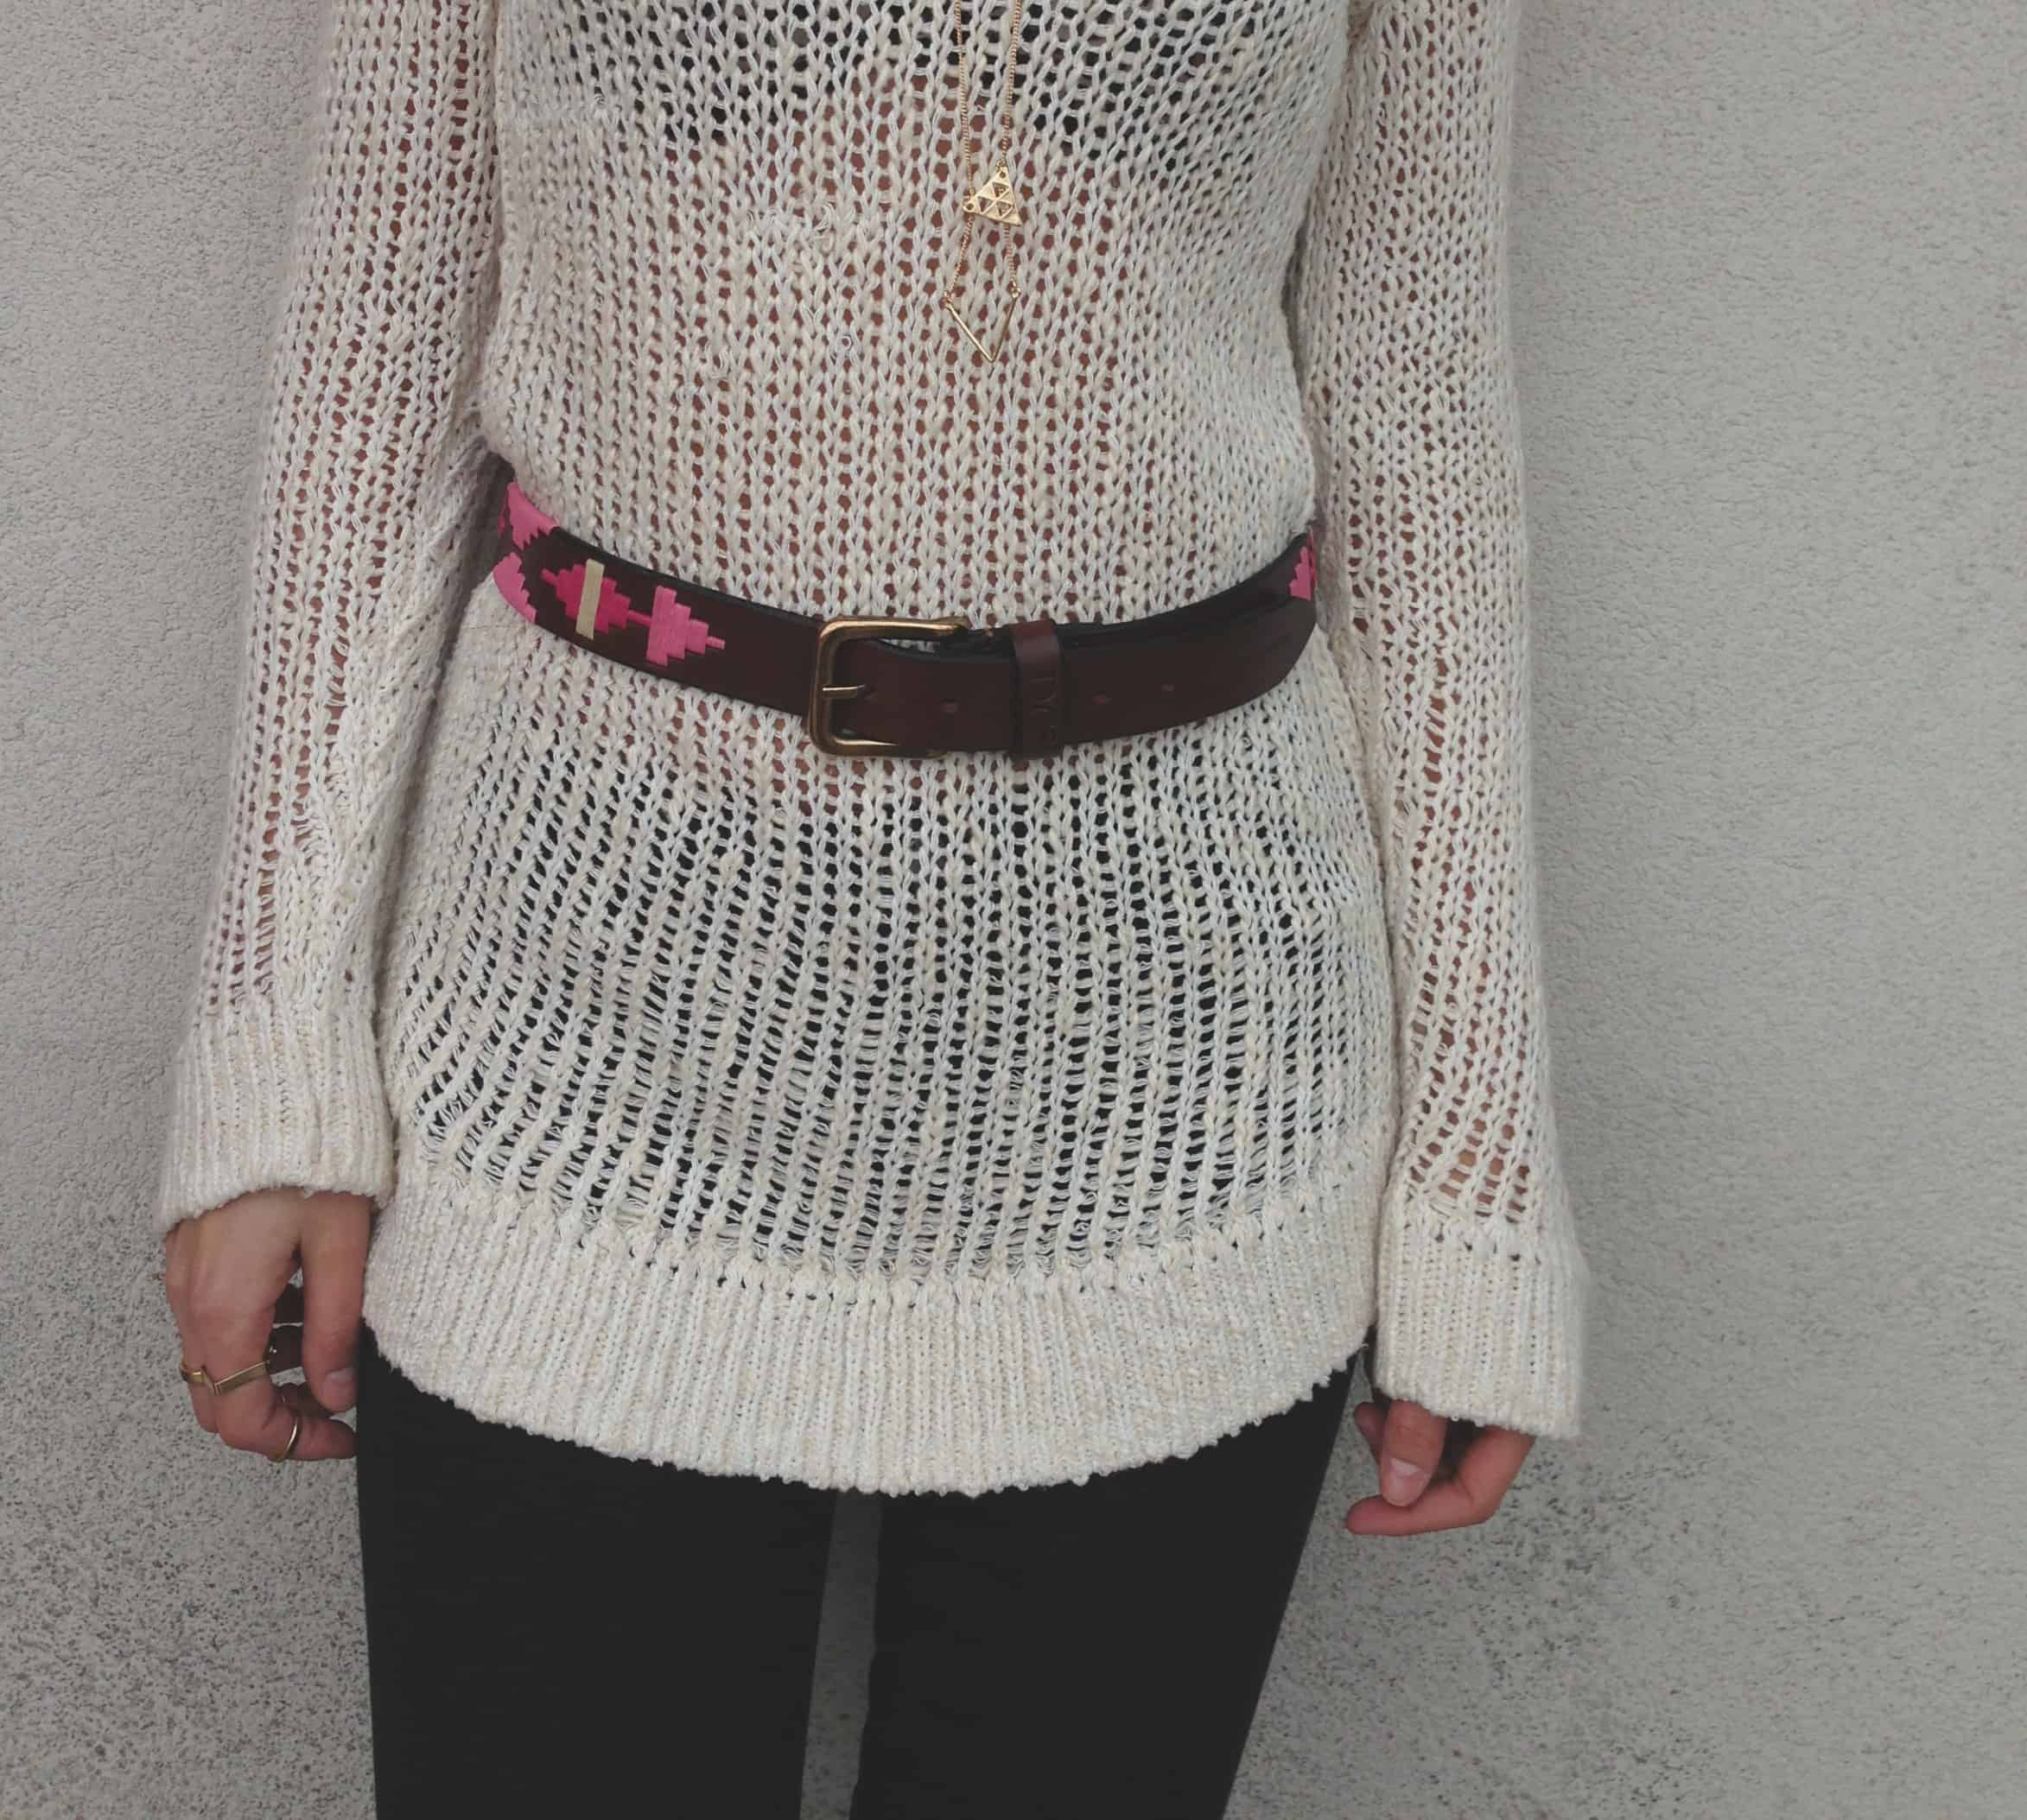 belt-over-sweater-style-fashiontag-